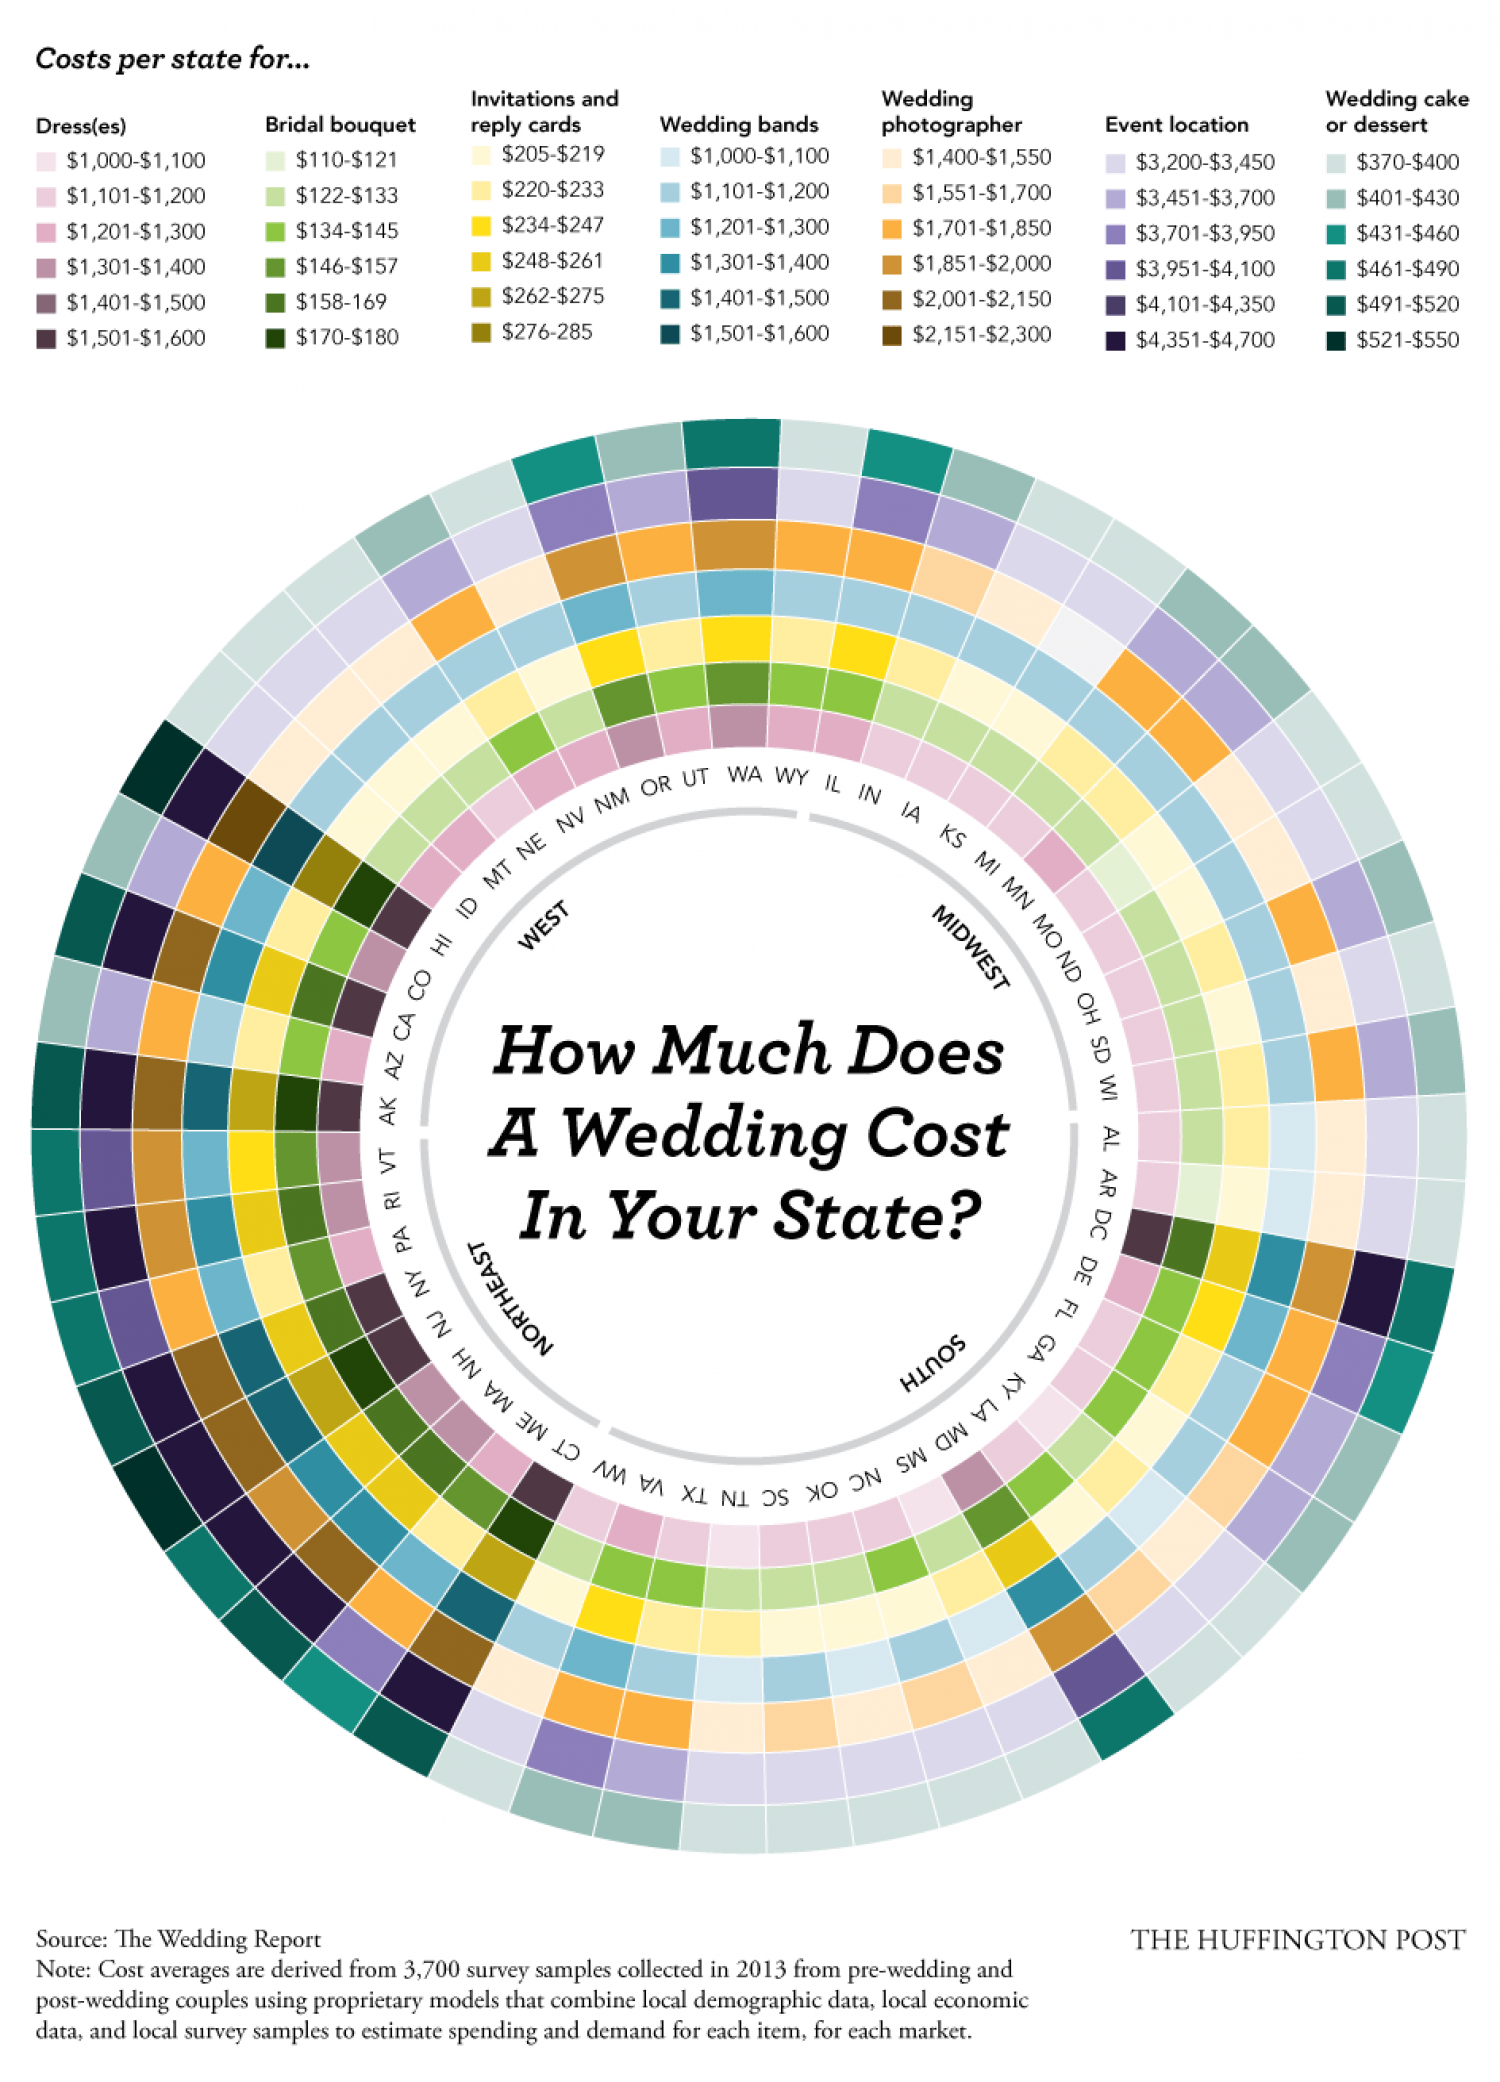 How Much Does A Wedding Cost In Your State? Infographic